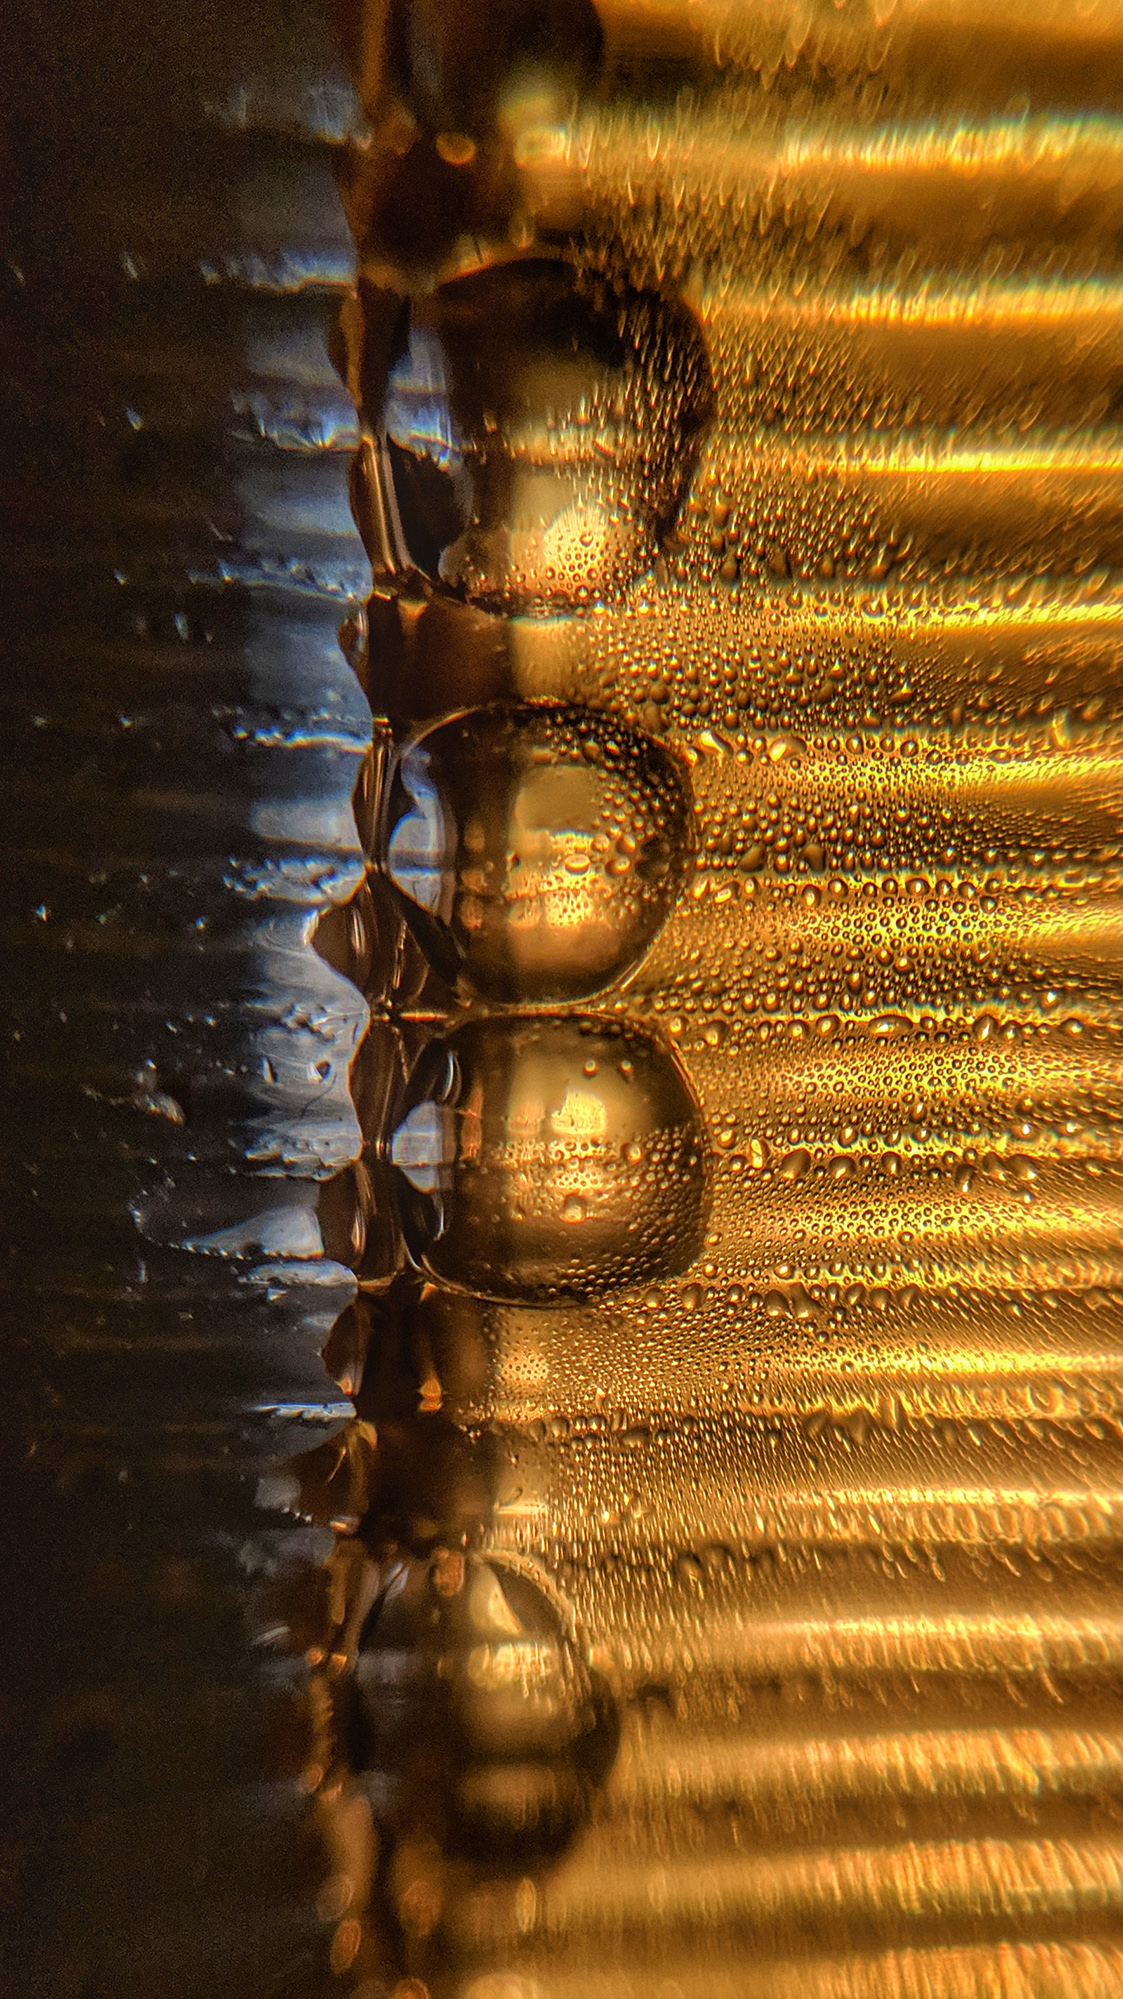 I always love the details in a picture, so here I have the bubbles on the surface of the drink with pretty details in it . Lit the glass from the bottom with a phone torch and with the help of macro lens took the image.